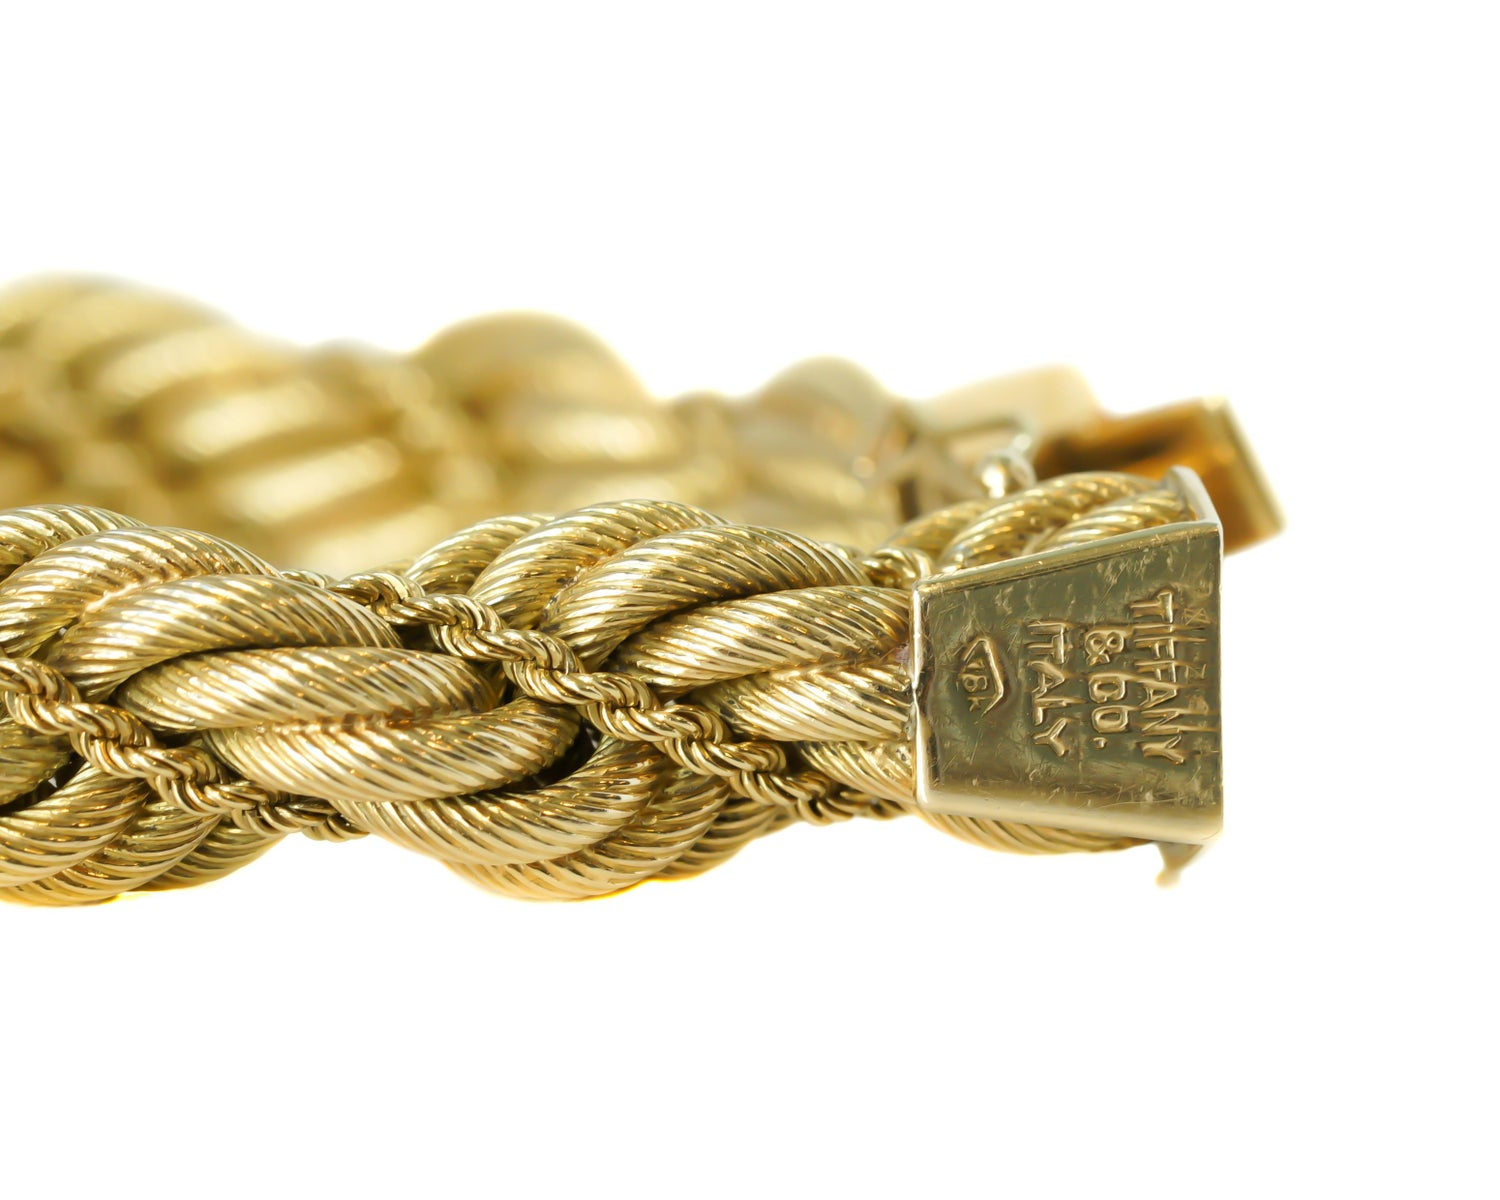 6f23e5fd3 Tiffany and Co. 18 Karat Yellow Gold Large Twisted Rope Bracelet at 1stdibs